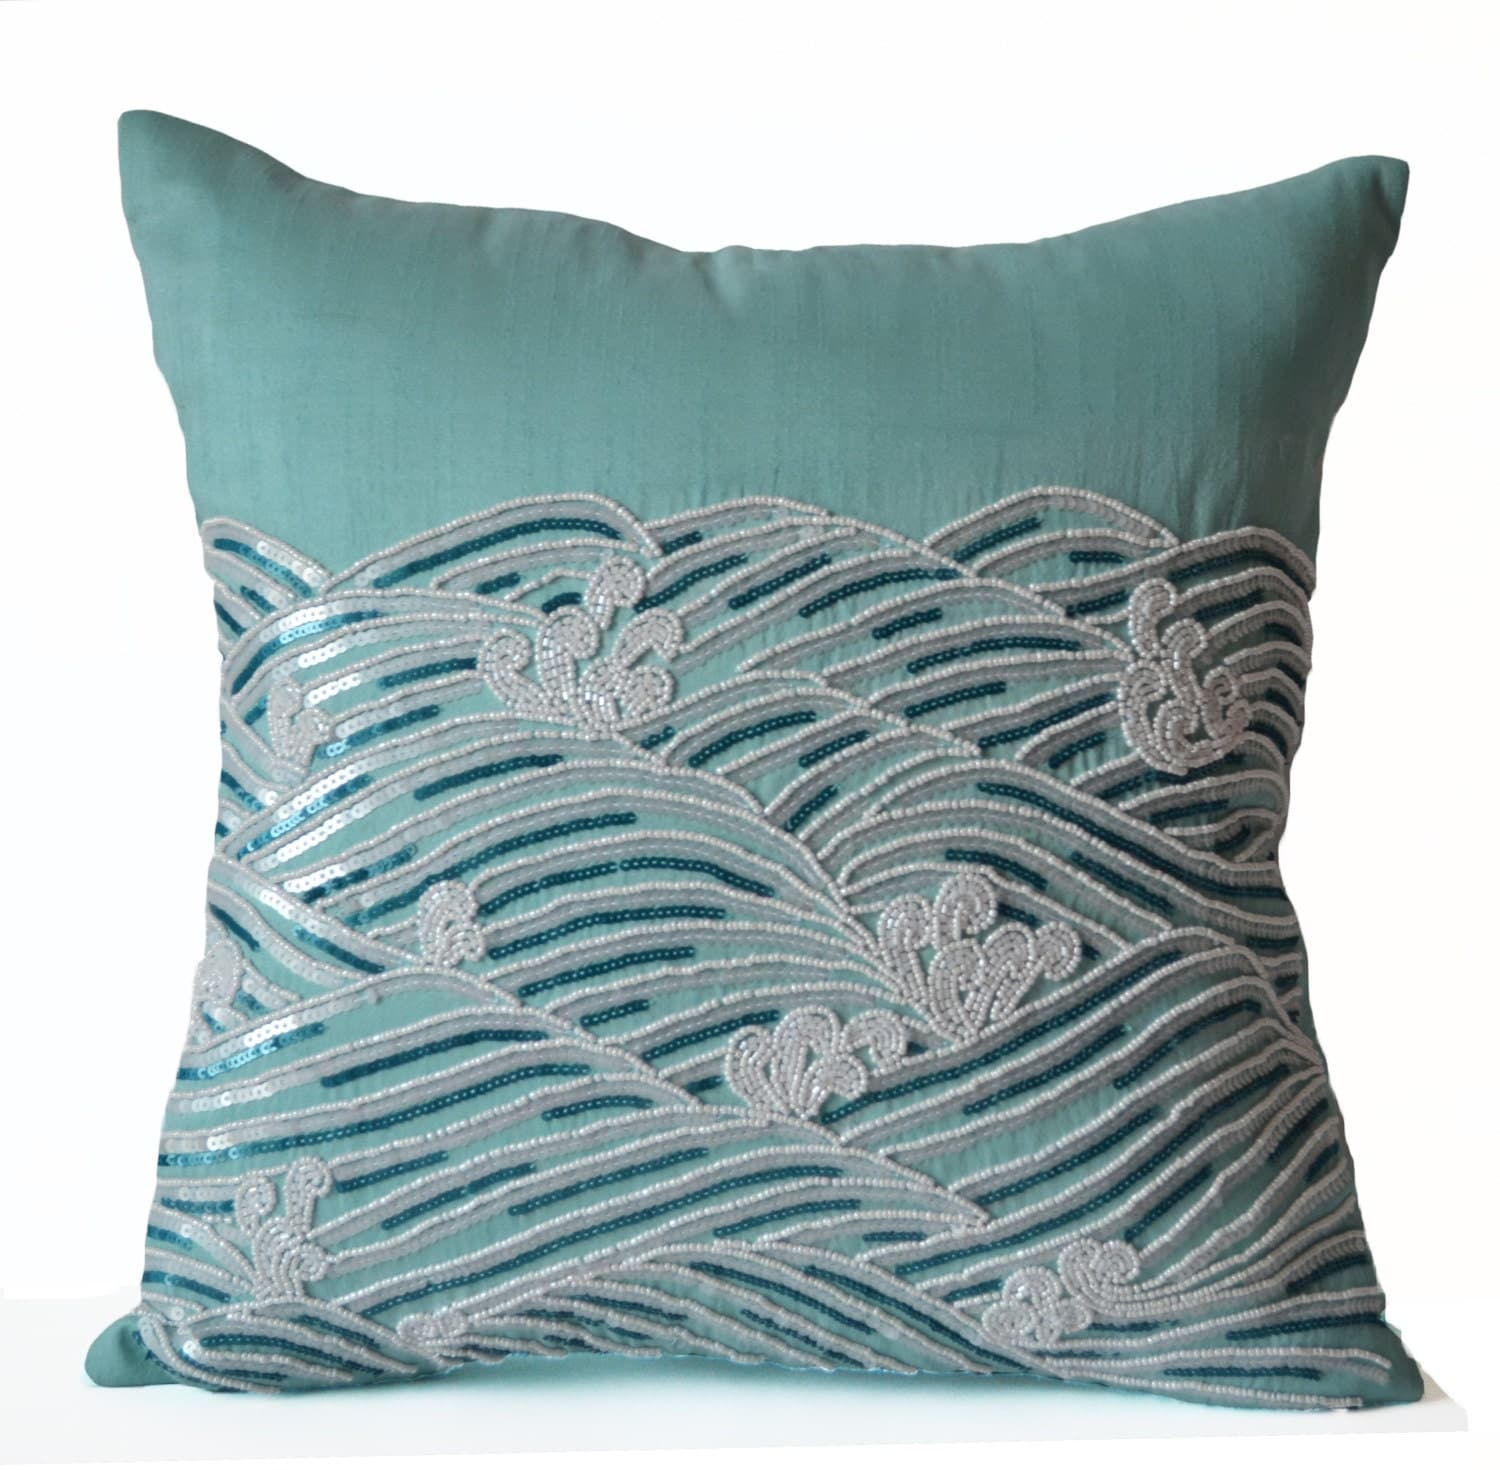 Decorative Pillows With Sequins : Decorative Pillow Cover Teal Throw Pillows Sequin Accent